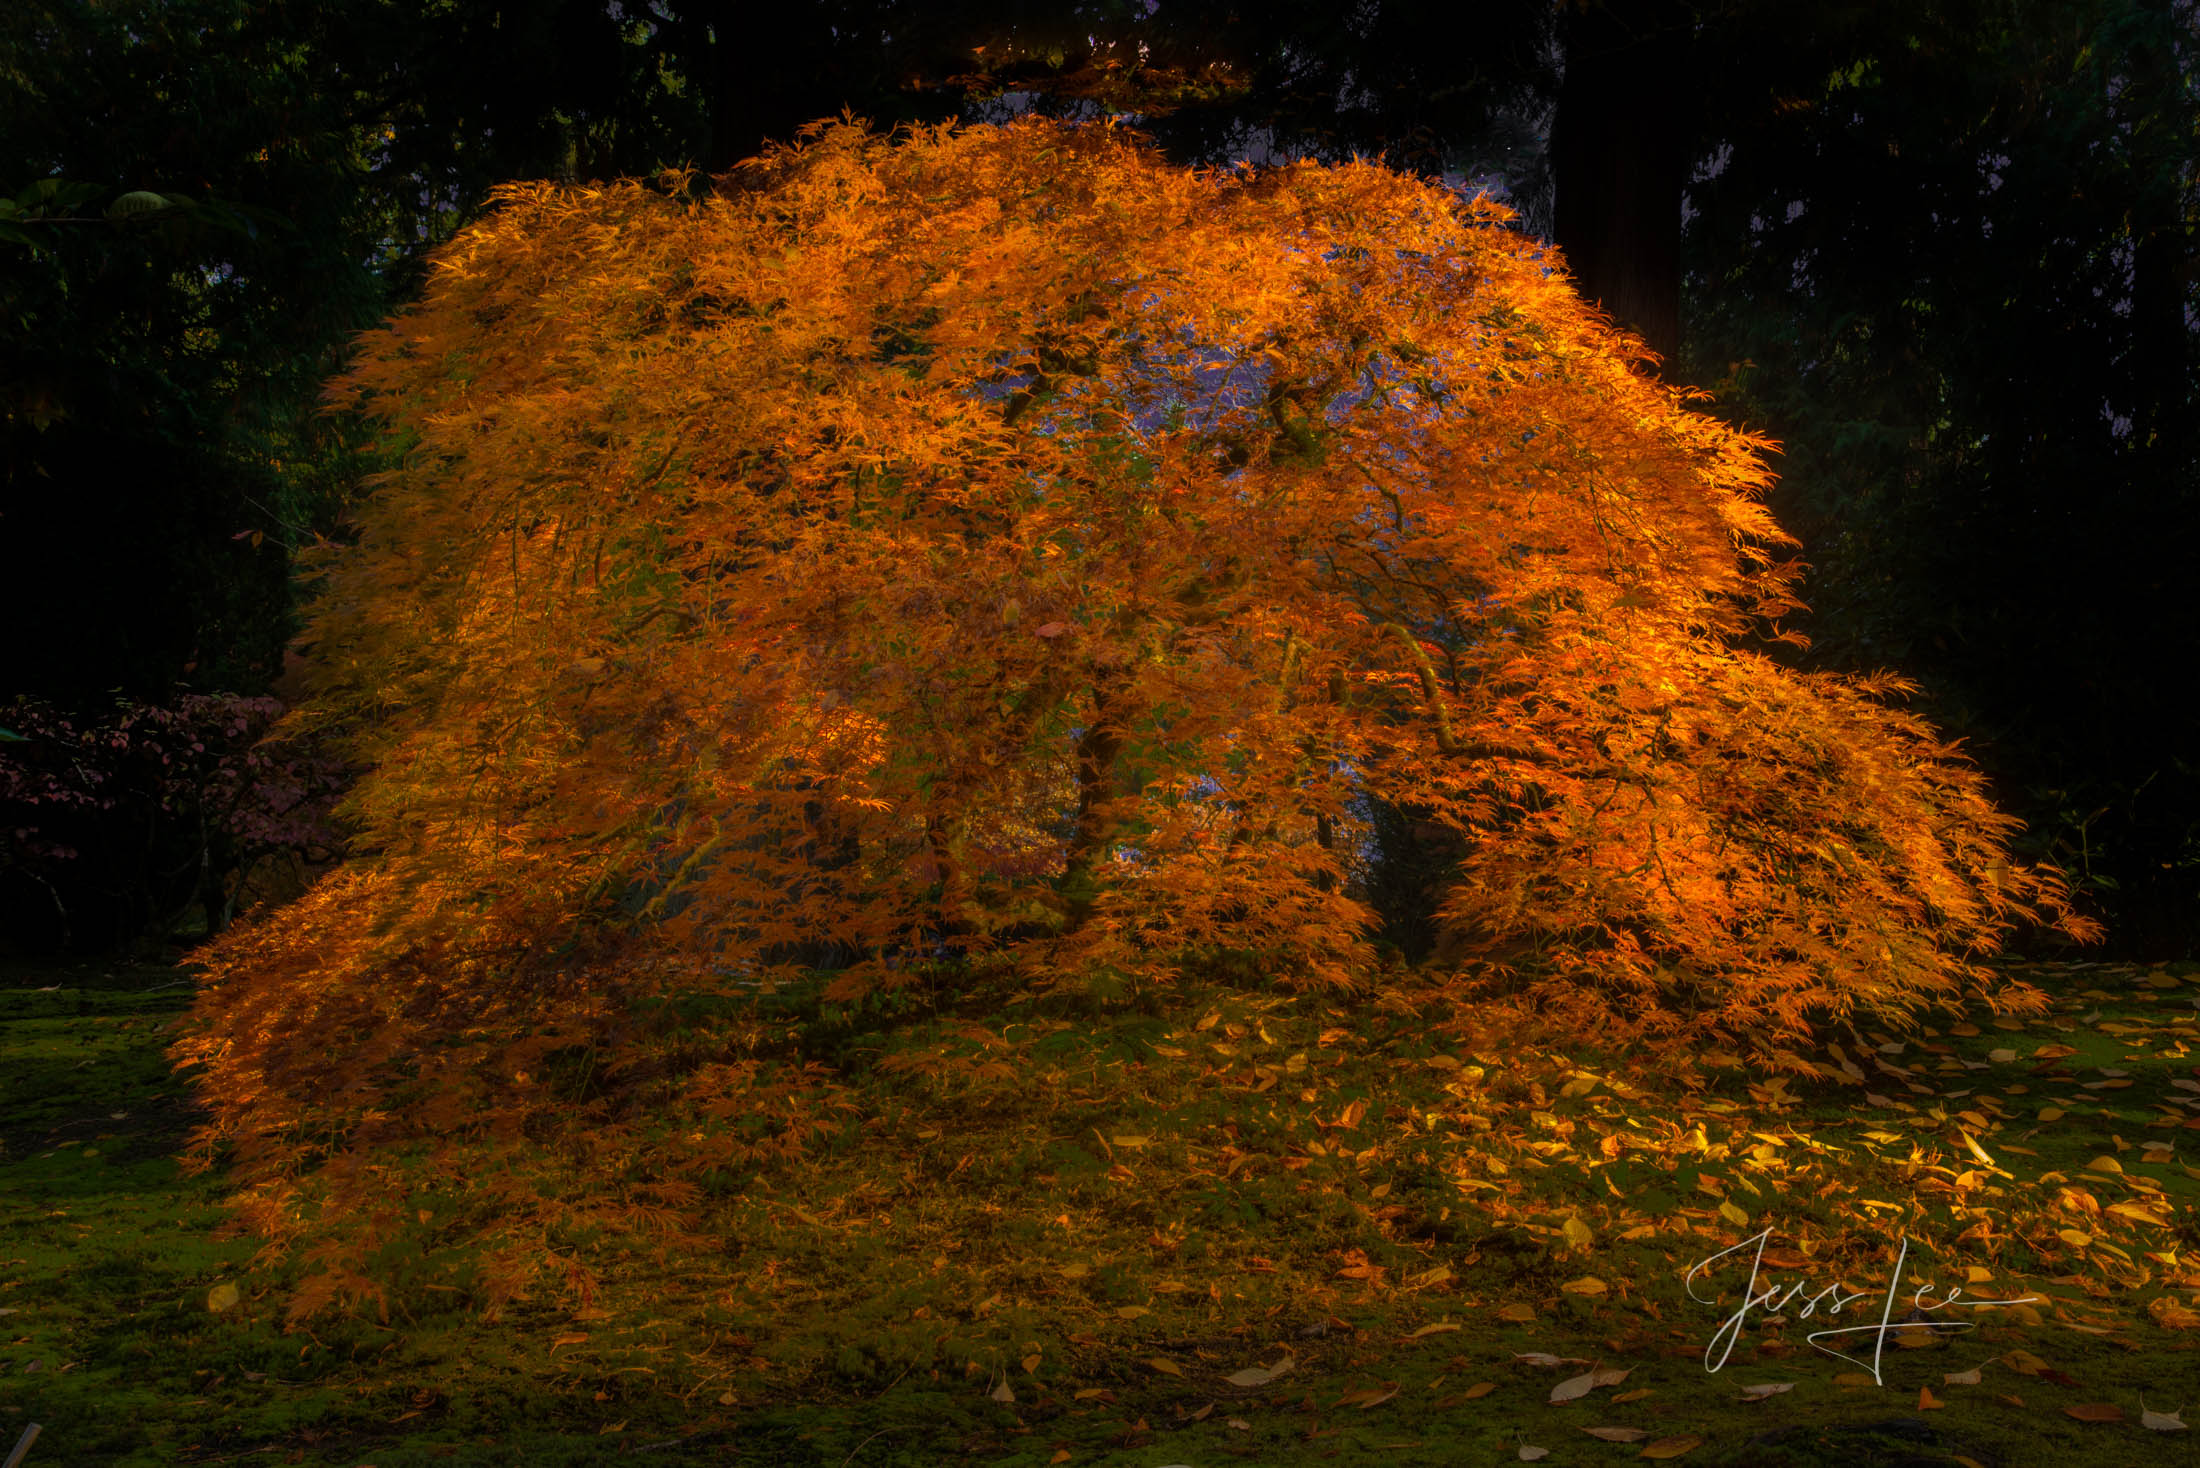 Autumns golden Tree bow photograph., Autumn, Color, road, country road, trees, Portland , photo